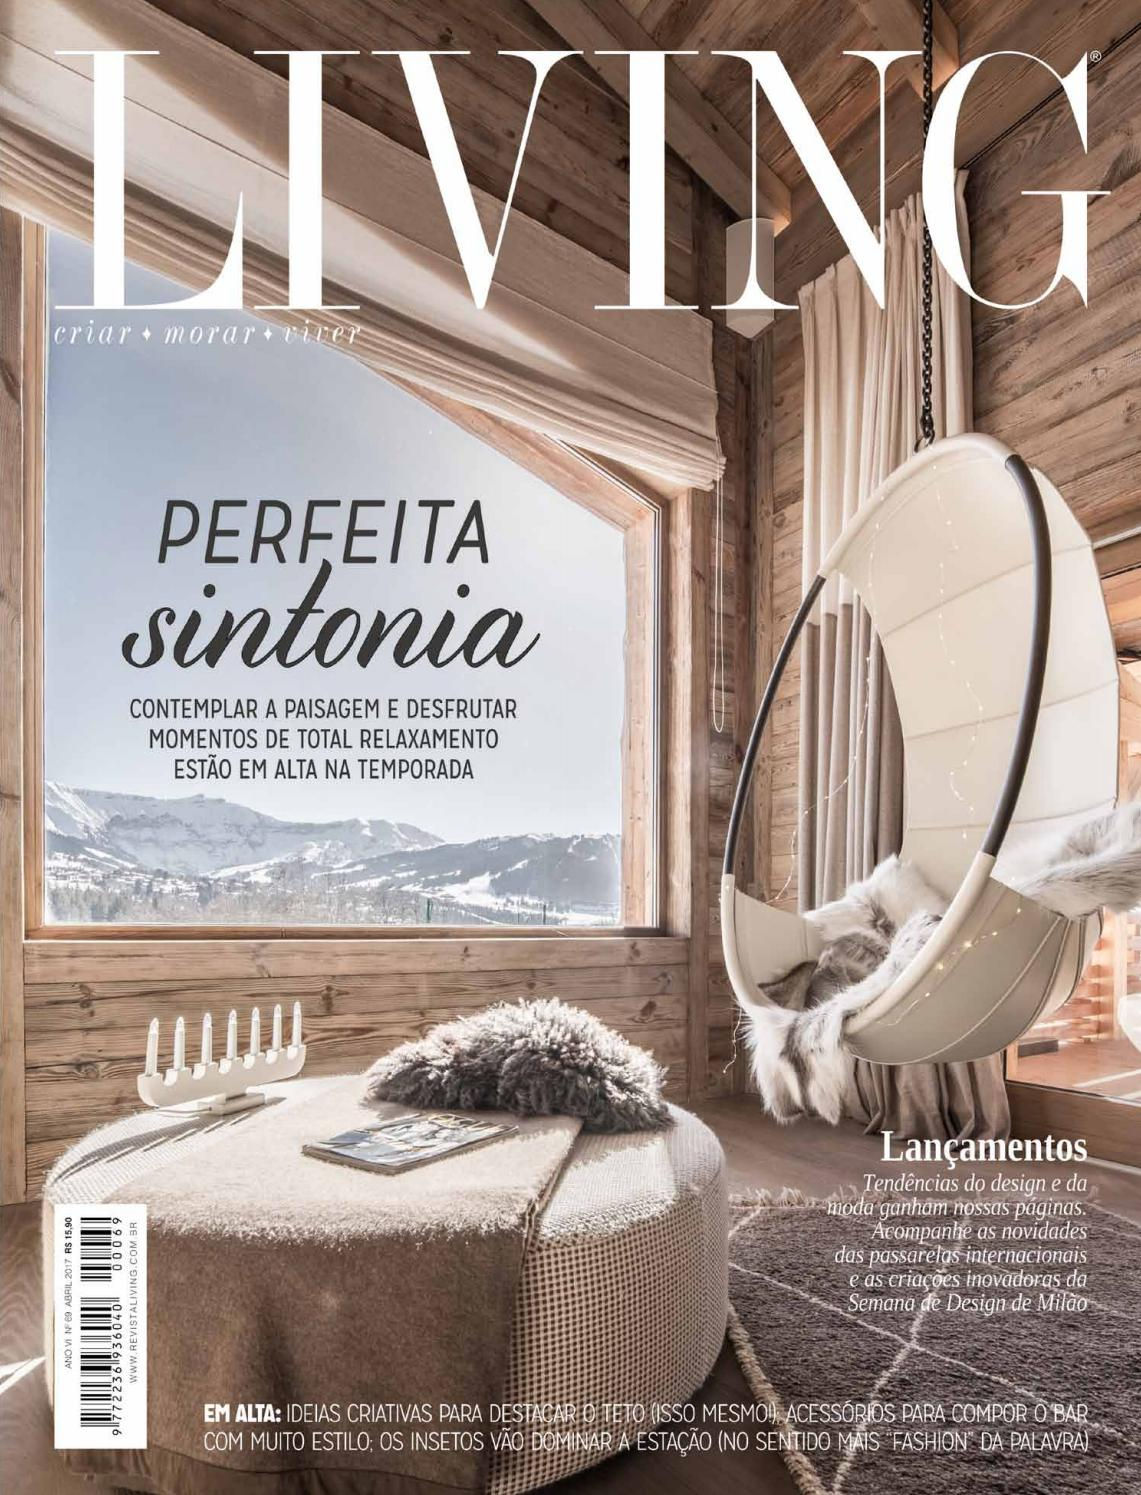 Revista Living - Edição nº 69 Abril 2017 by Revista Living - issuu dfc4d6d935